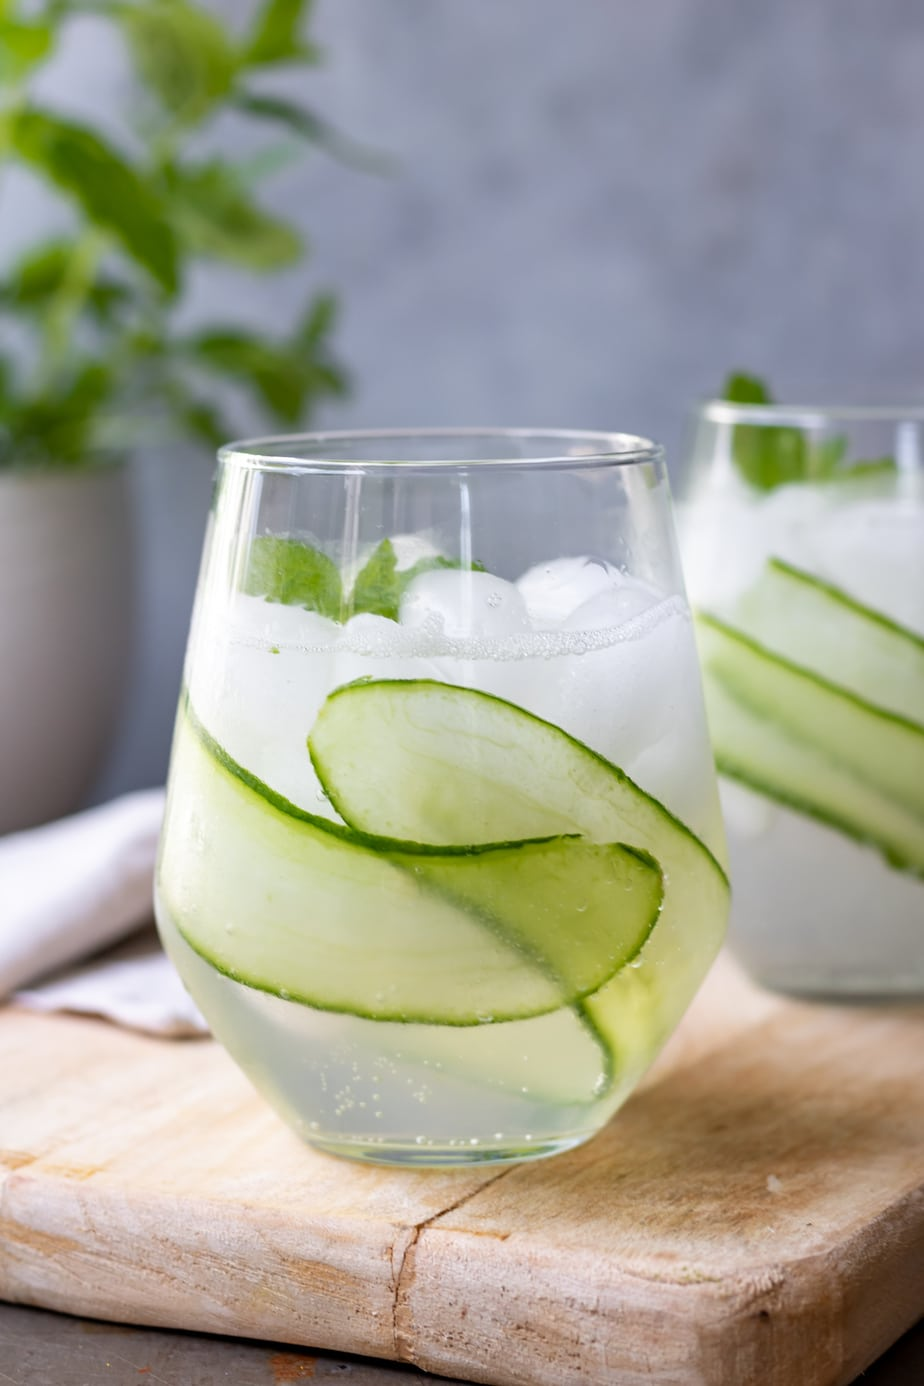 Glass of cocktail with ice and slices of cucumber.